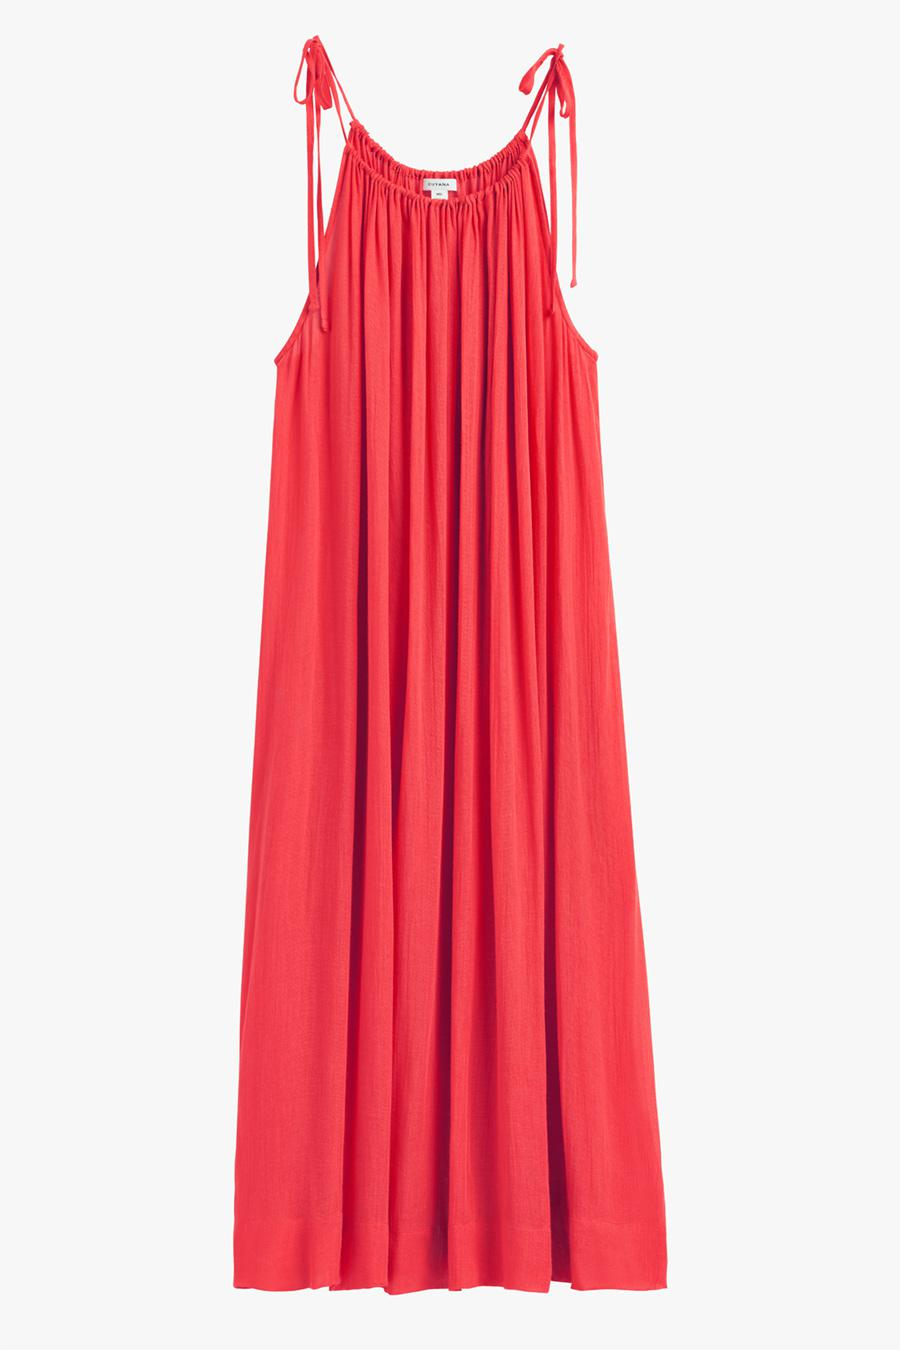 Women's Gathered-Neck Maxi Coverup in Lipstick | Size: